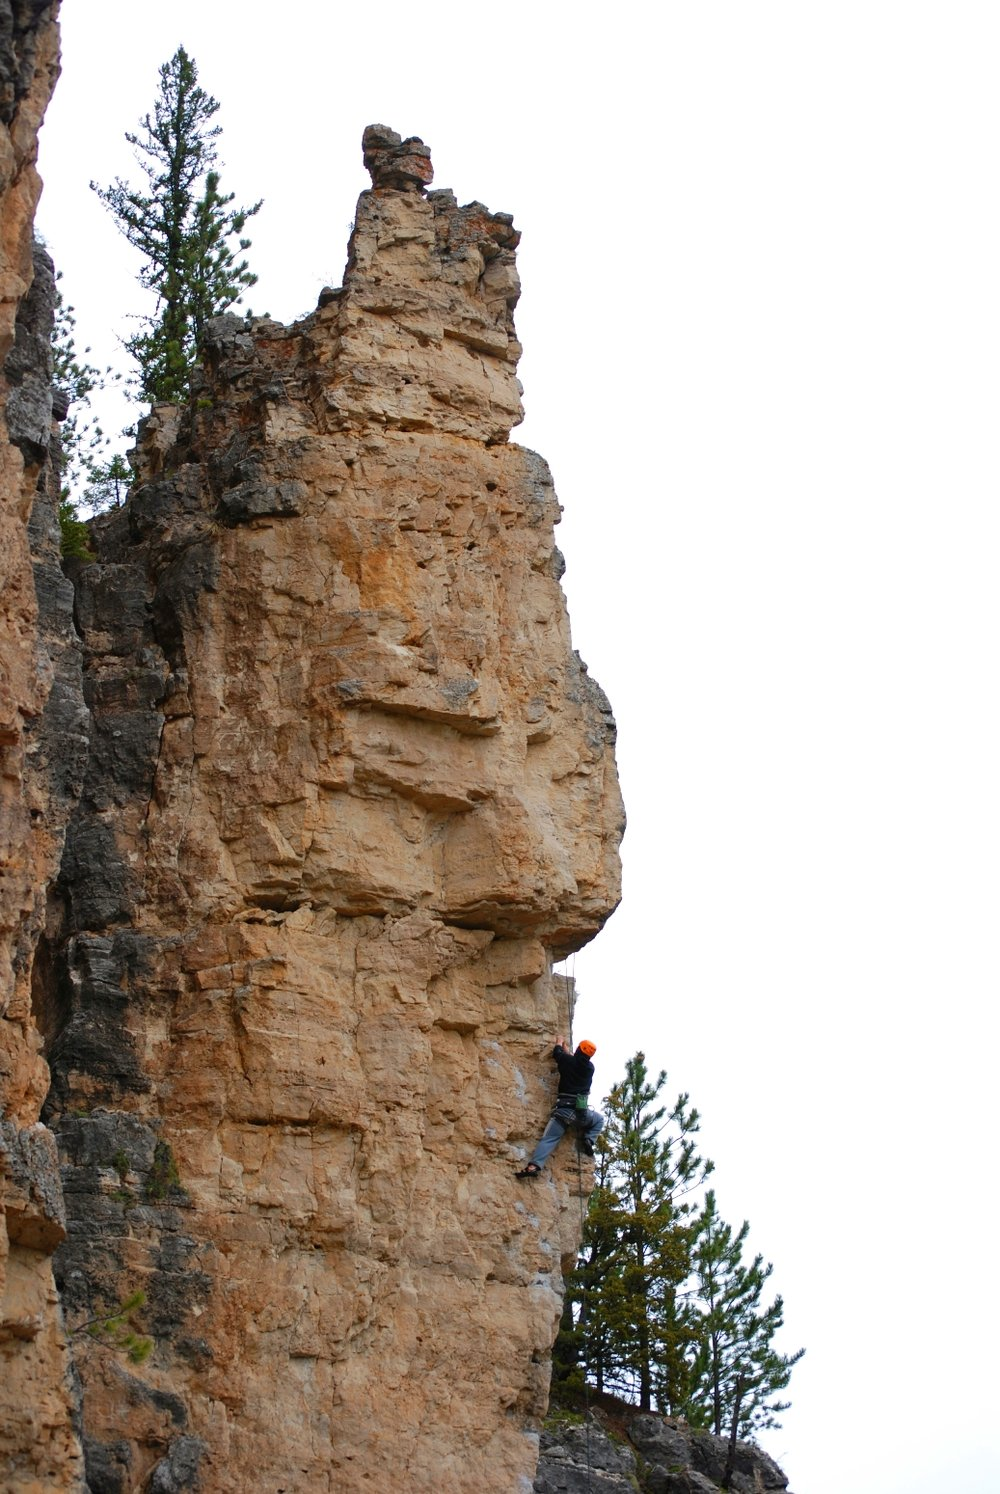 Shawn leading Peace Pipe, 5.10c. Photo by Jamie Leibel.